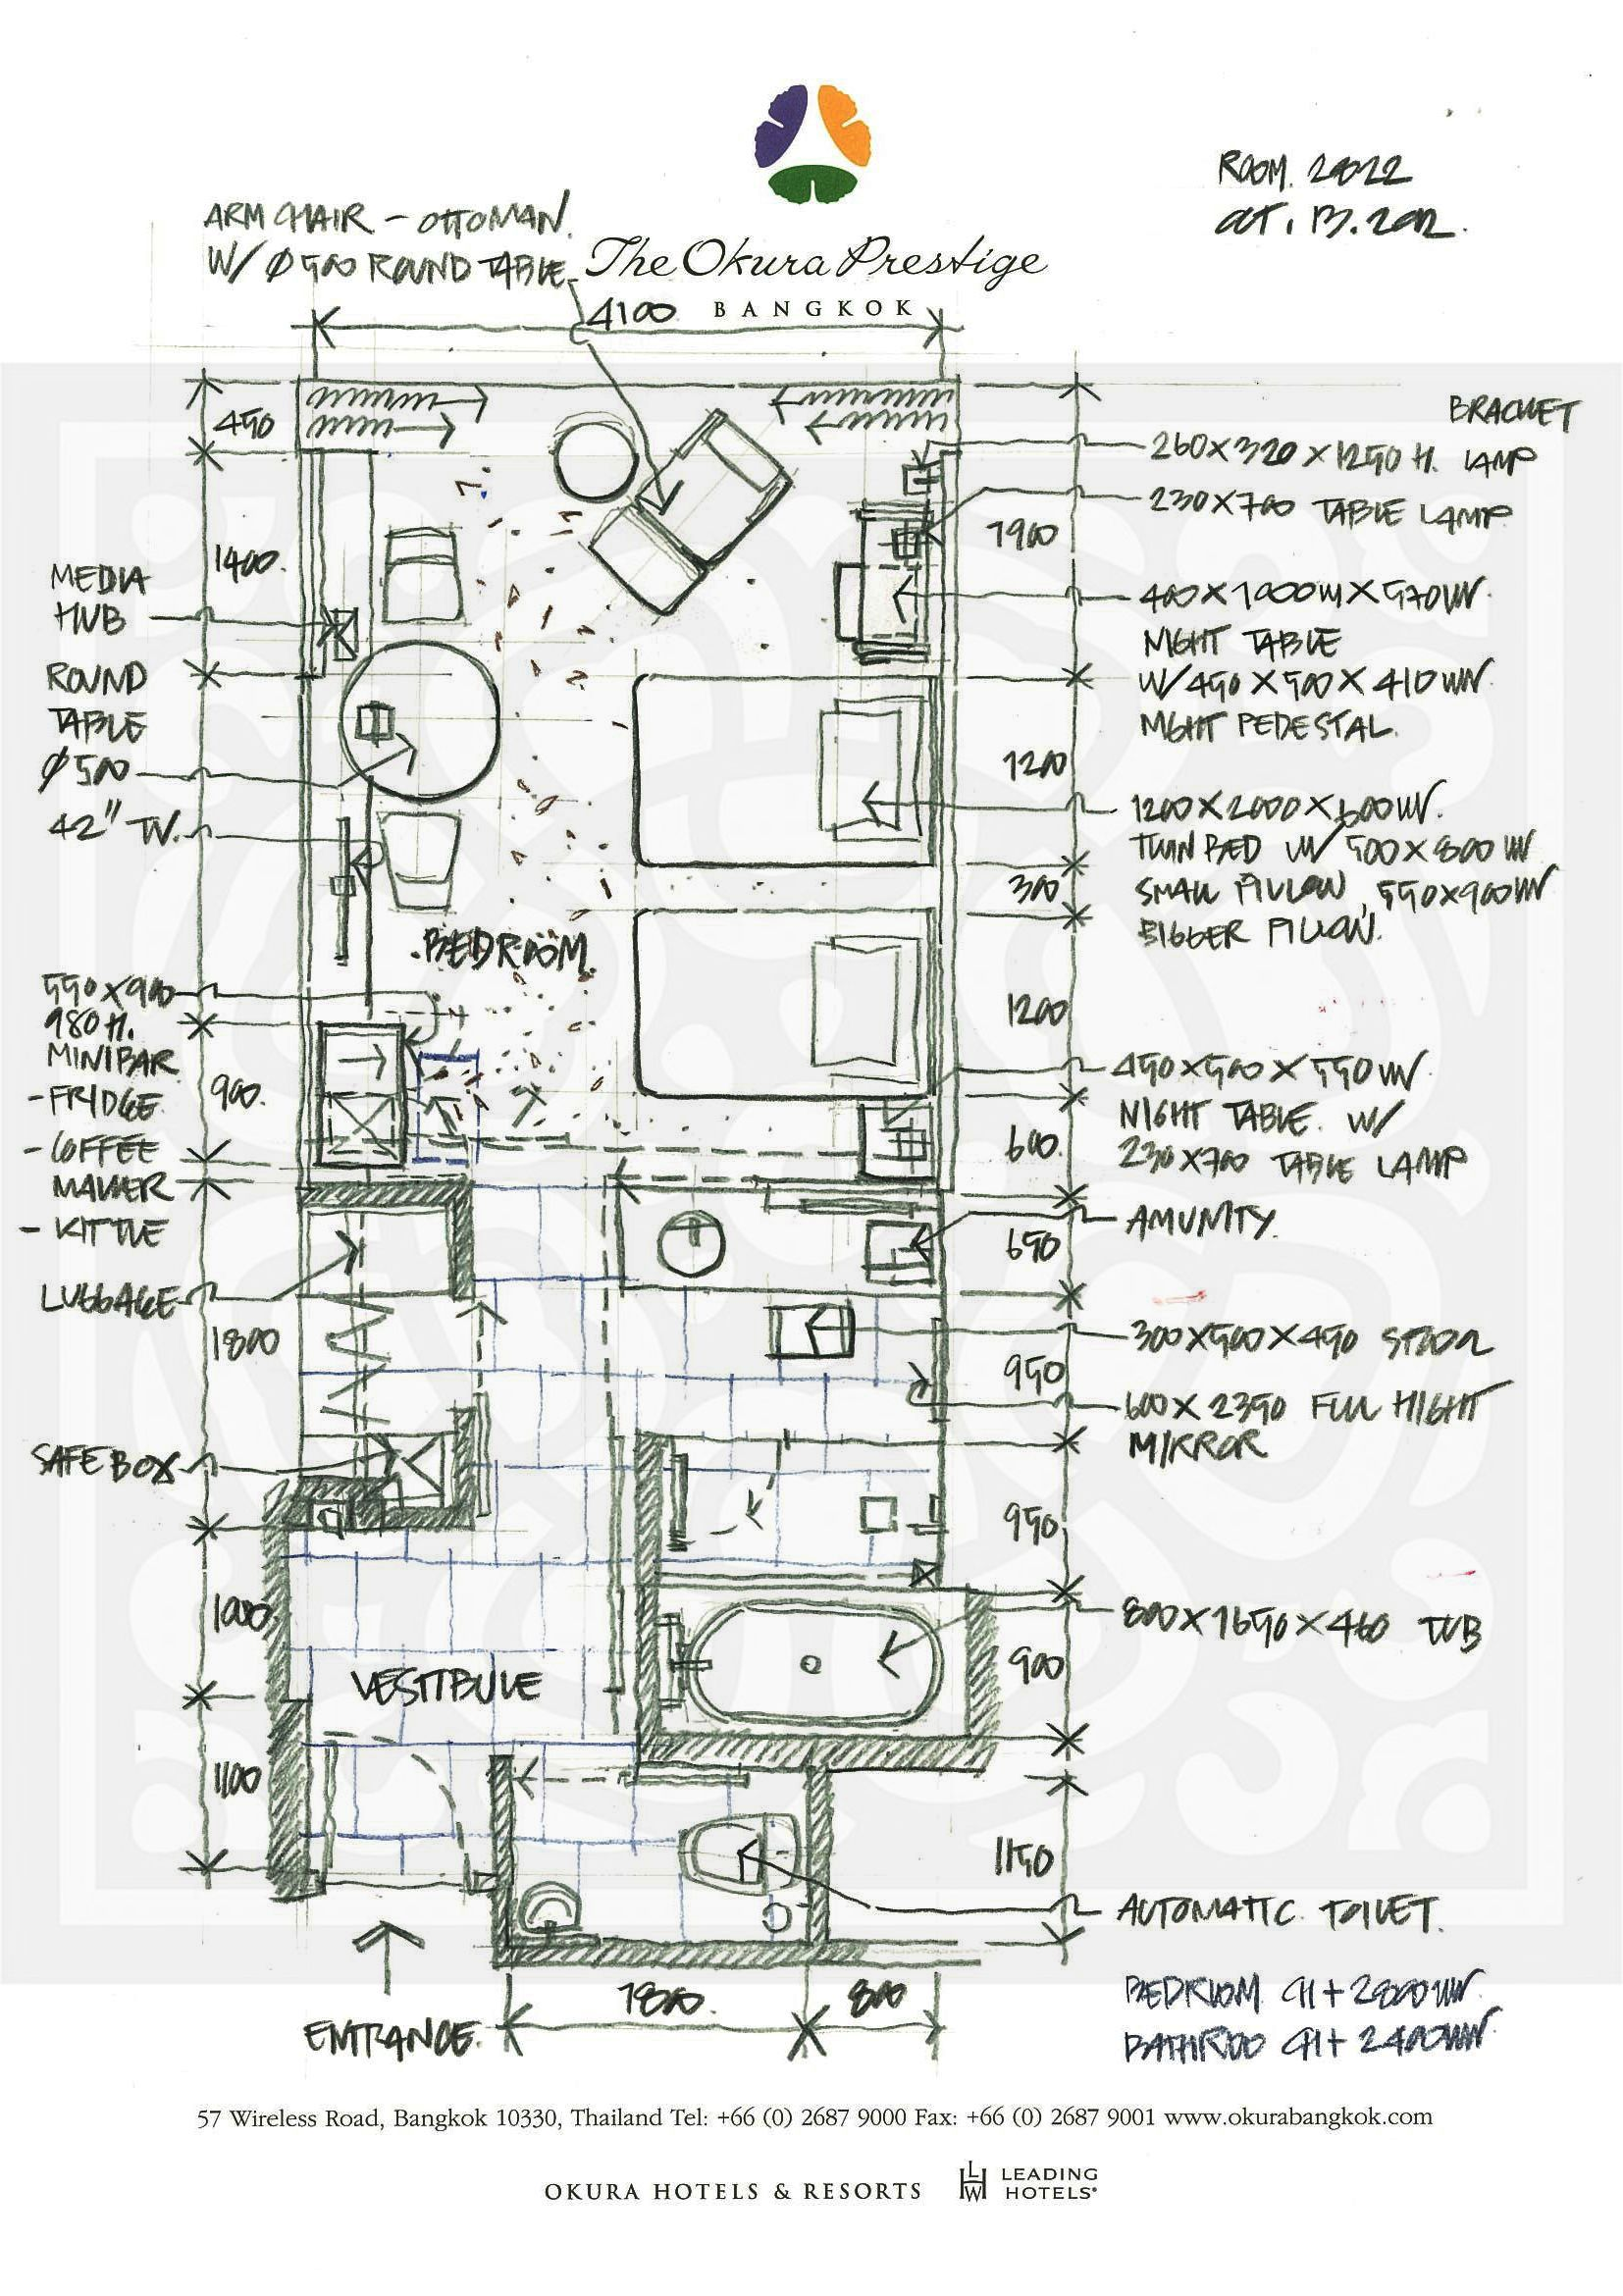 Floor Plan Drawing Hotel Room Design Office Bathrooms Bathroom Plans Architecture Dining Table Dormitory